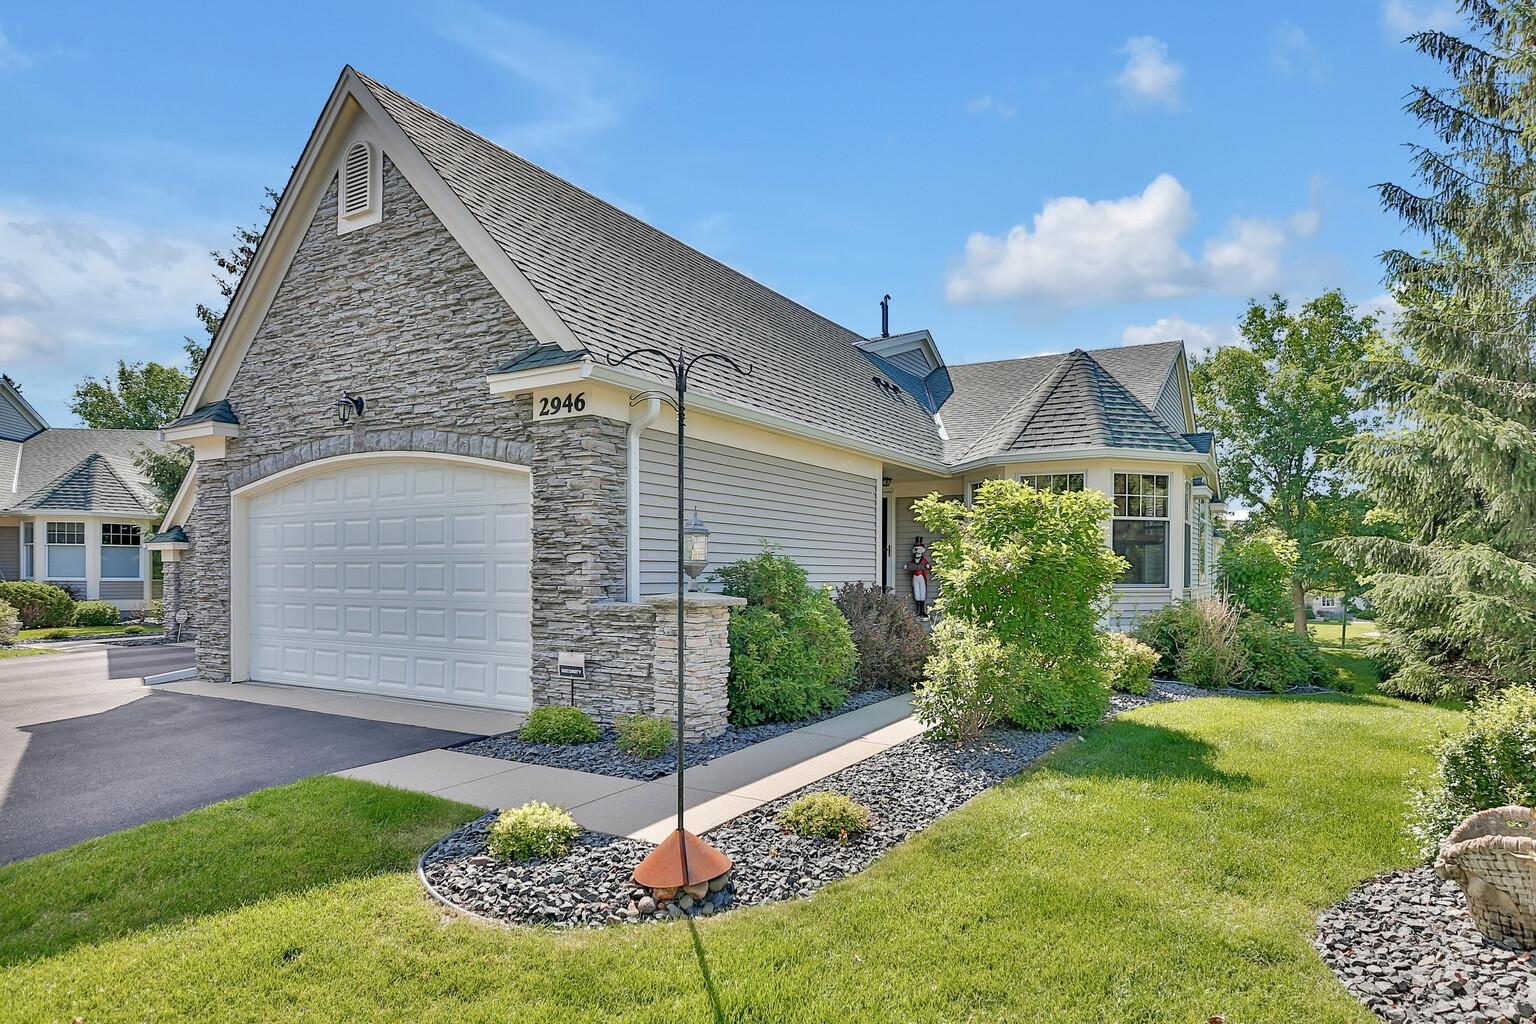 2946 Highcourte Property Photo - Roseville, MN real estate listing